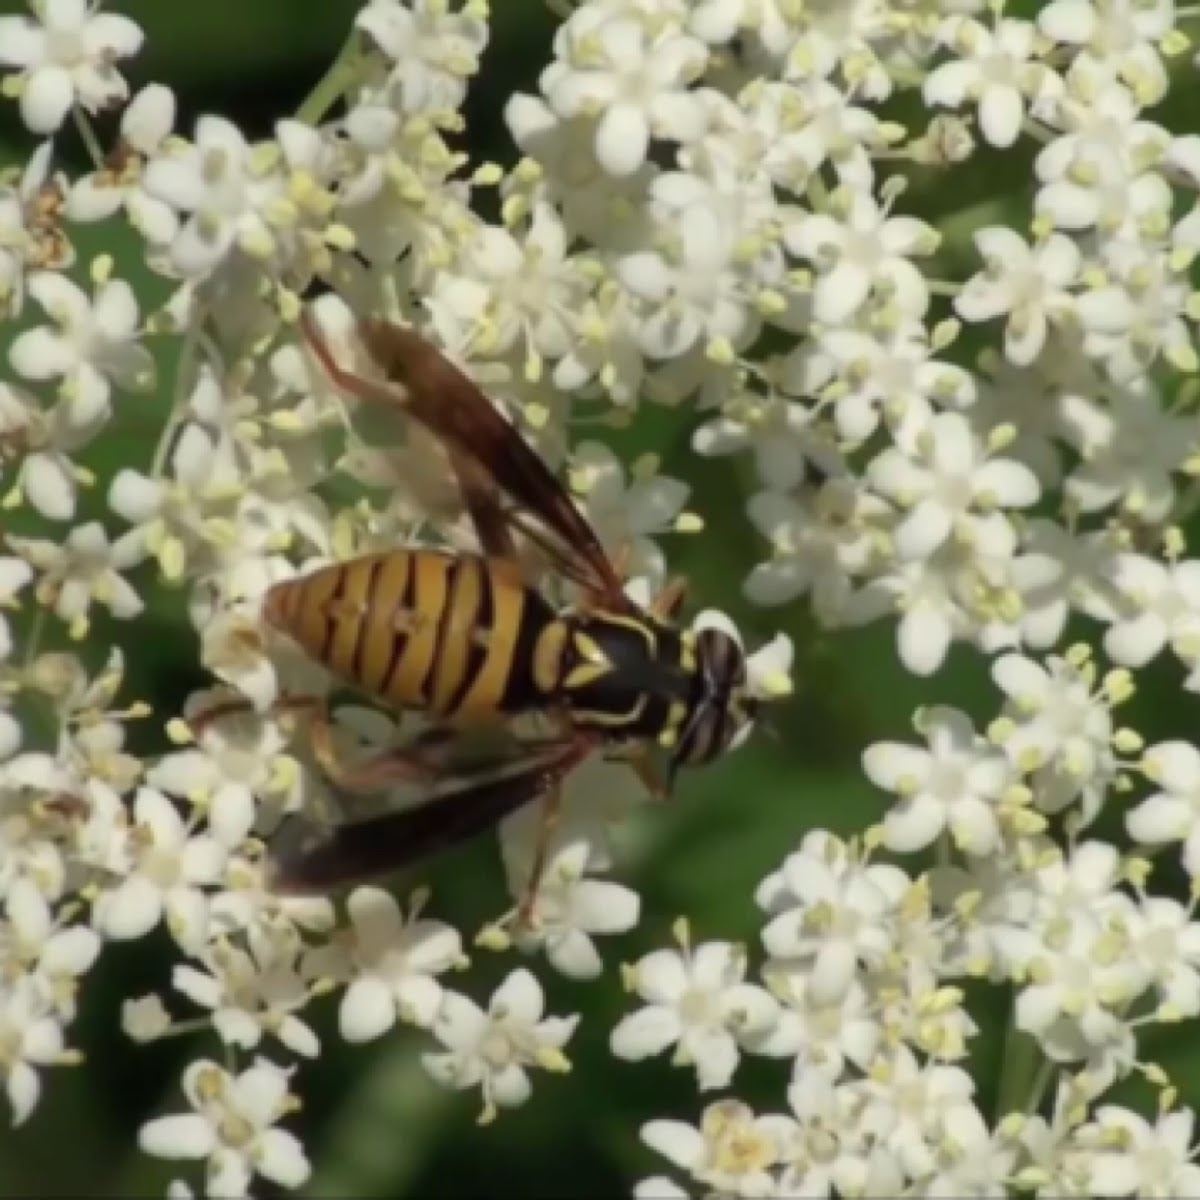 Wasp mimic flower fly